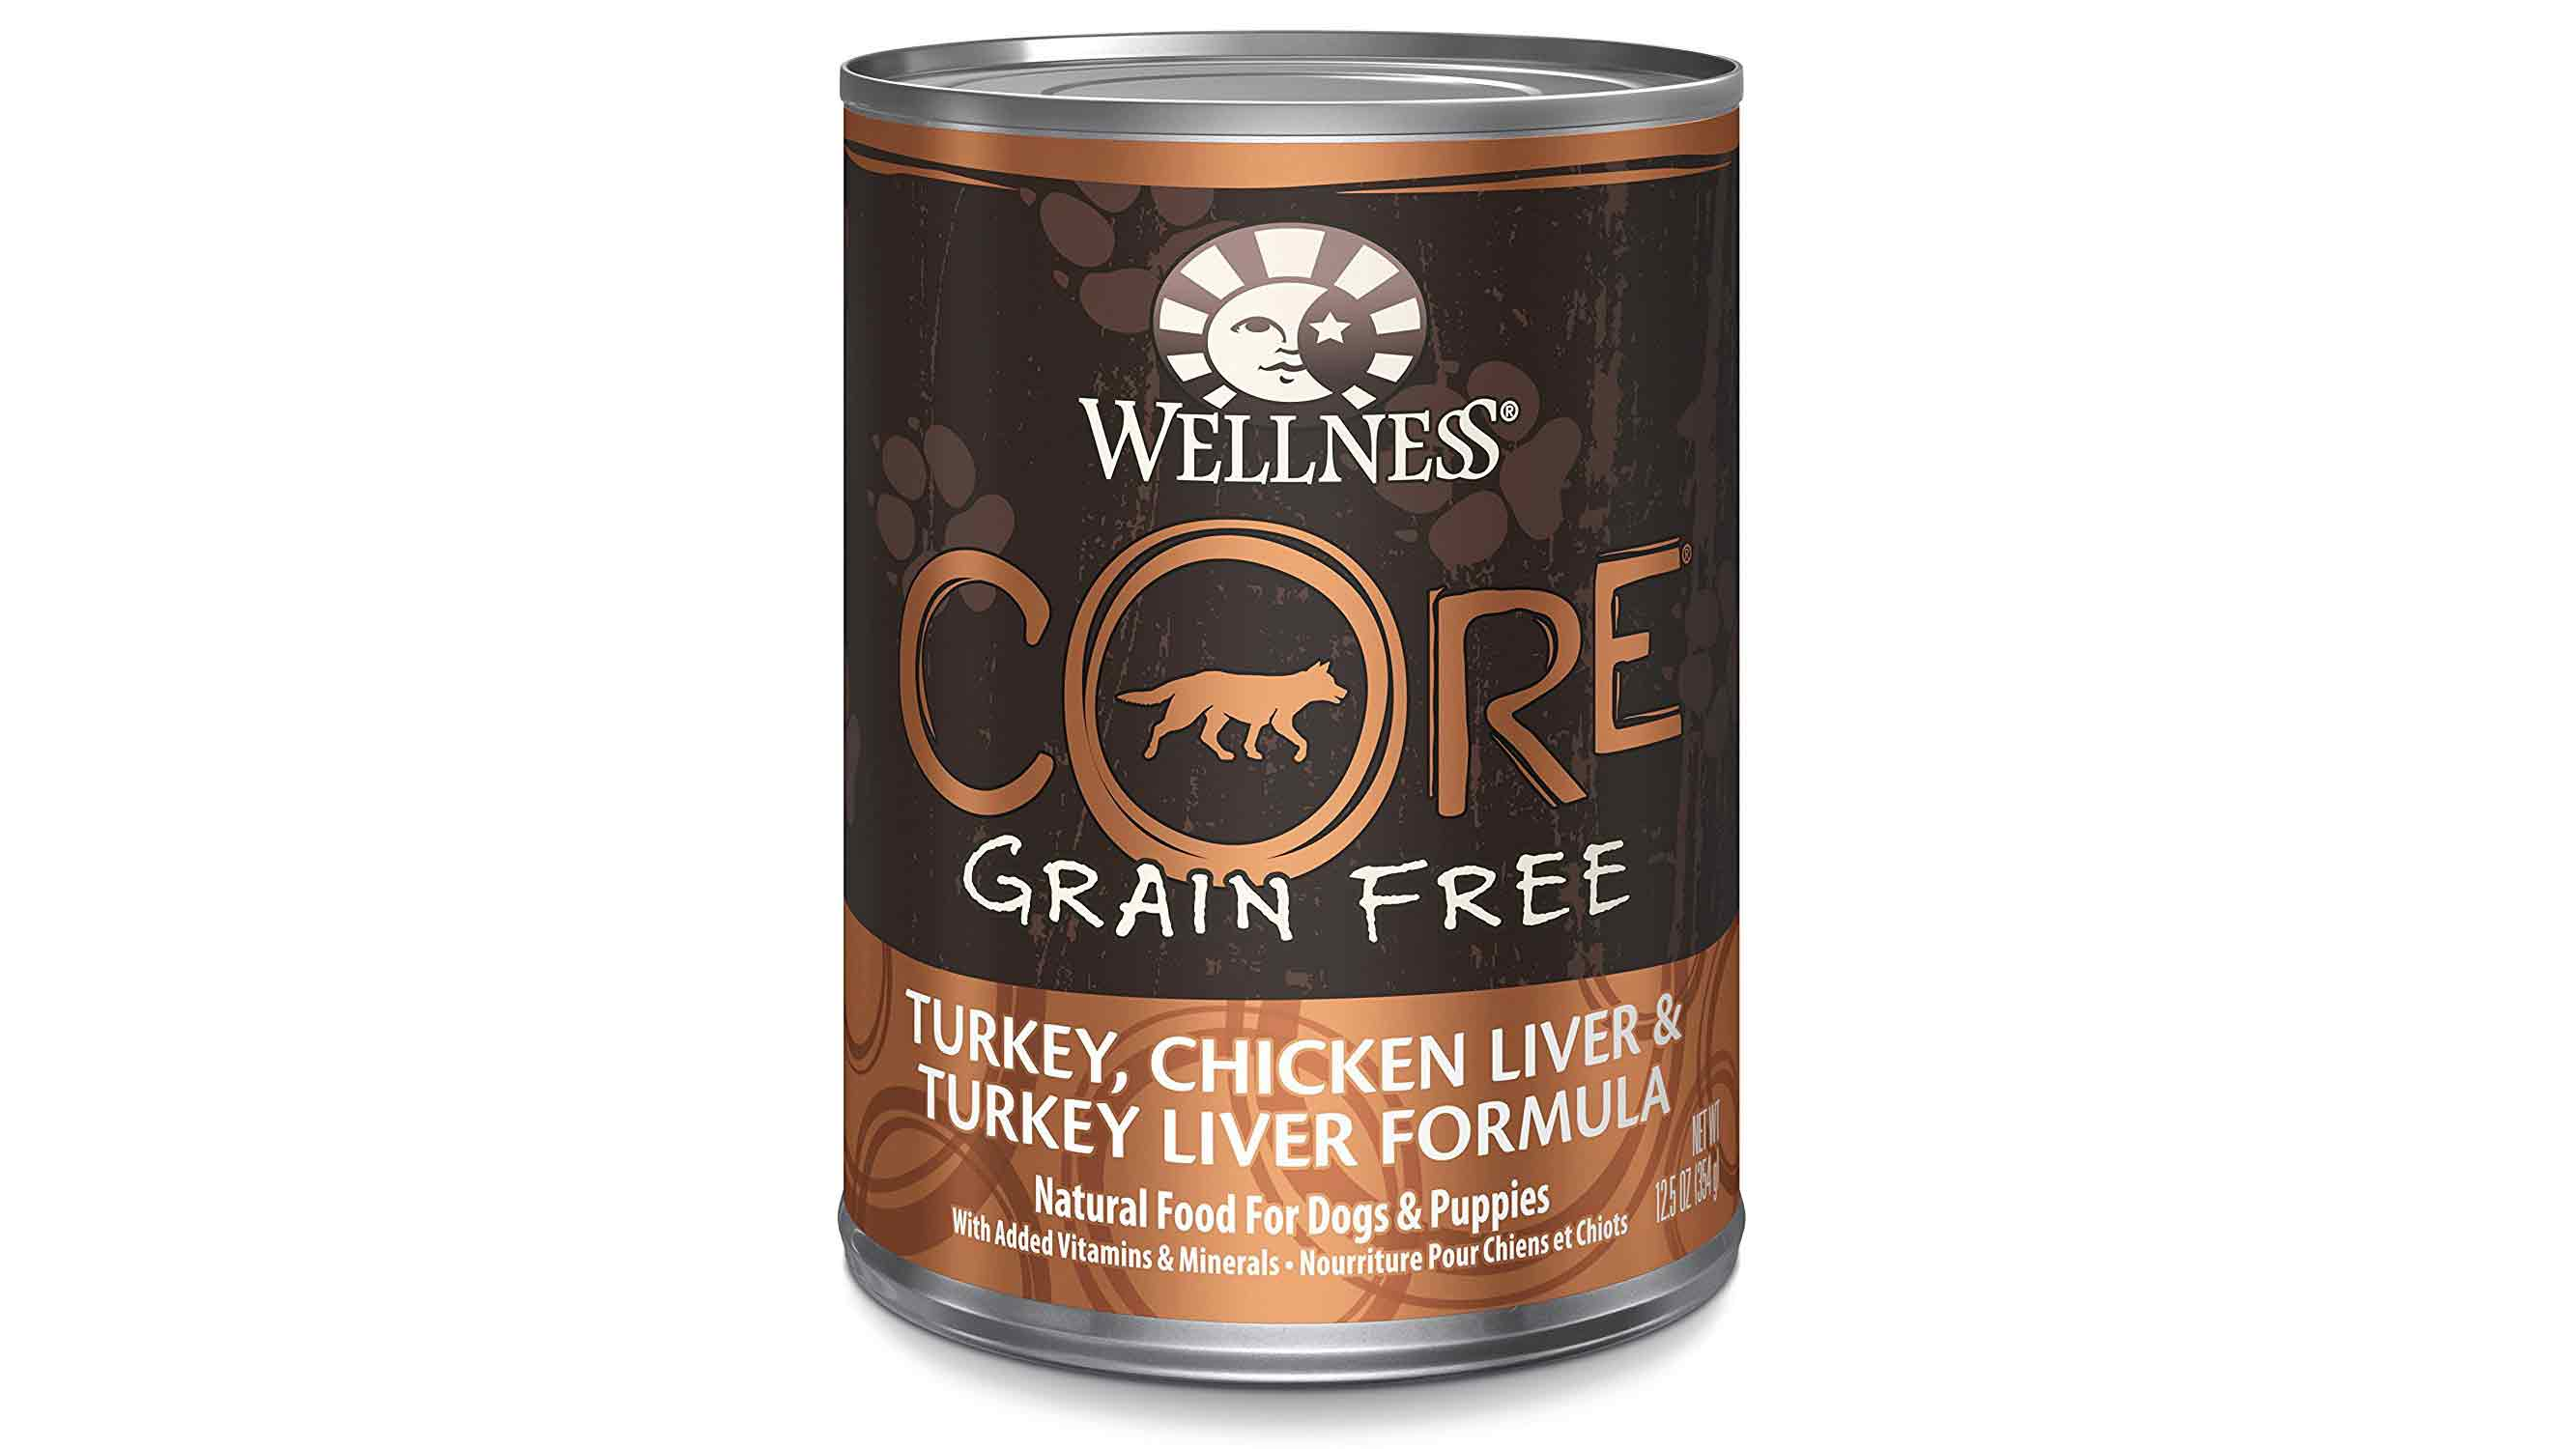 Wellness Core Canned Dog Food Ingredients